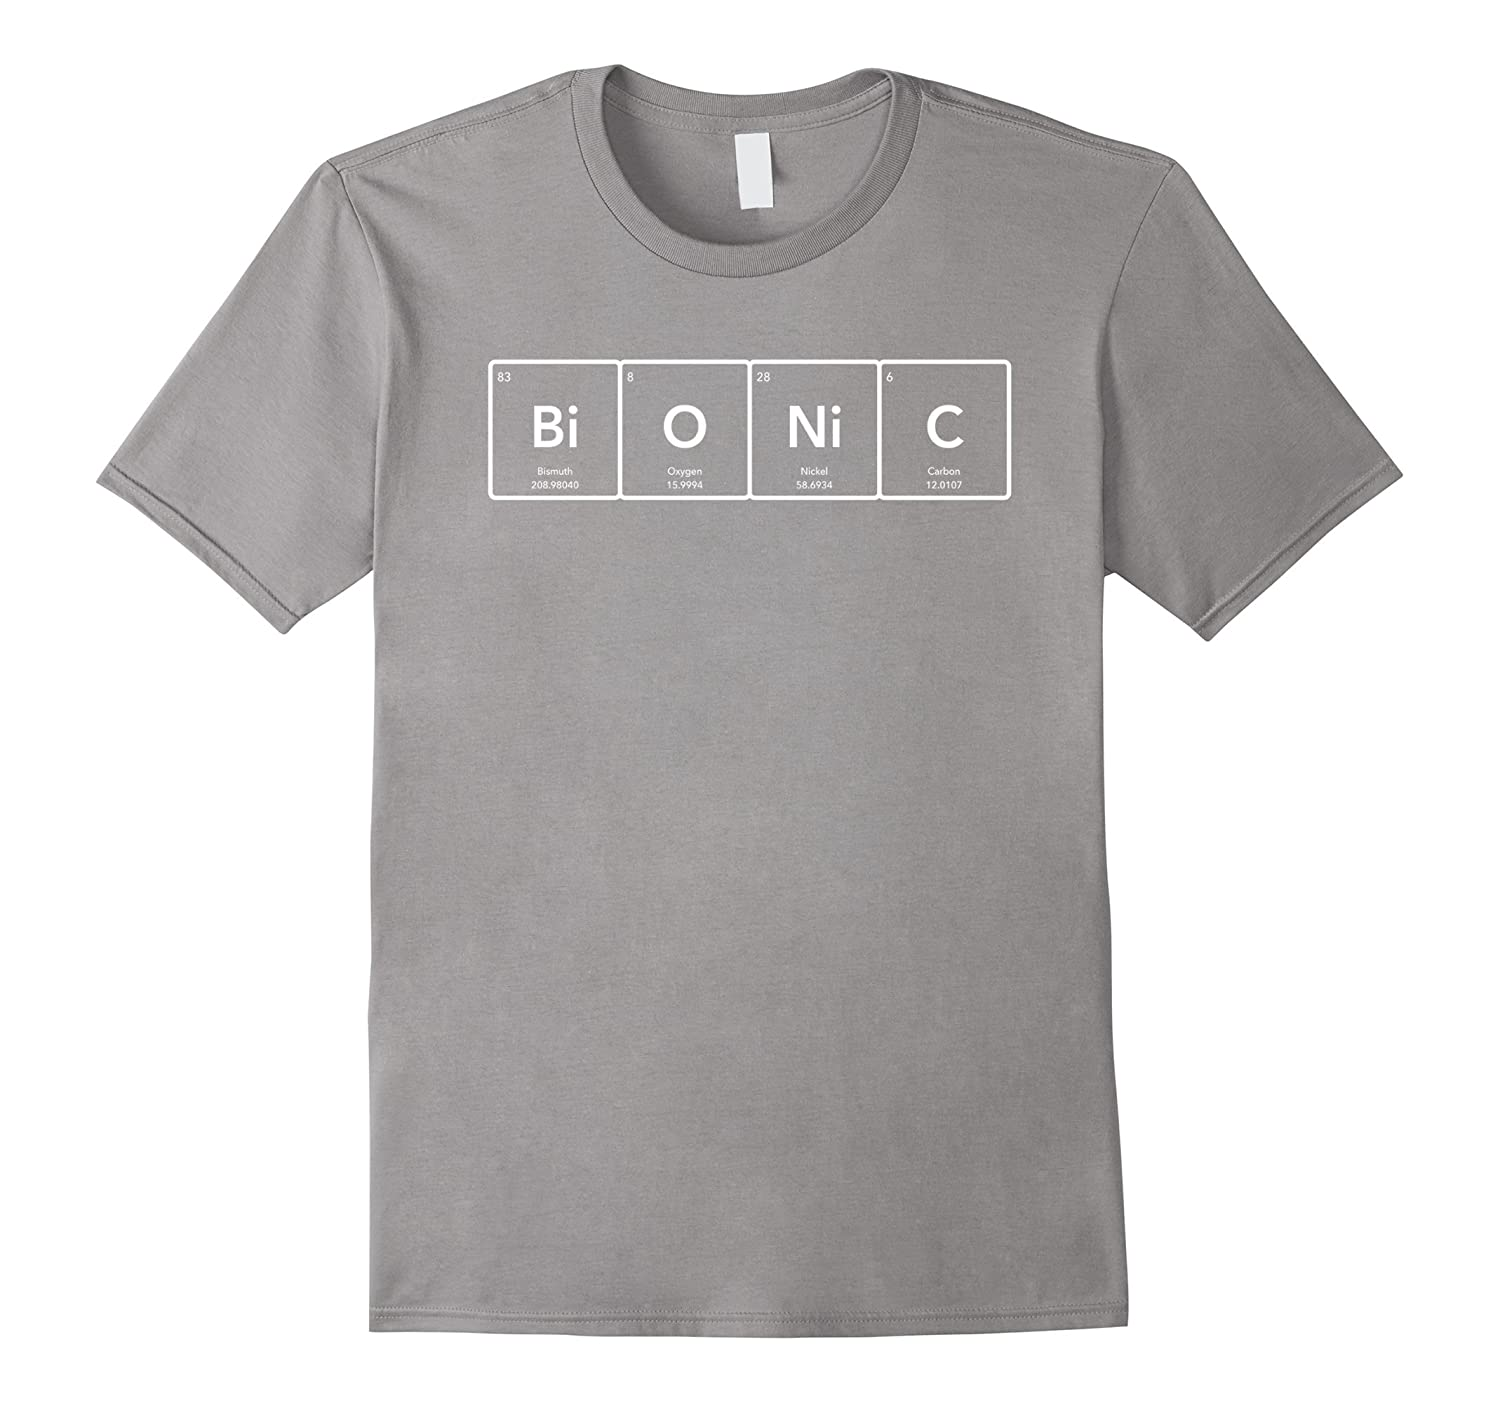 Bionic periodic table of elements t shirt anz anztshirt bionic periodic table of elements t shirt anz urtaz Image collections